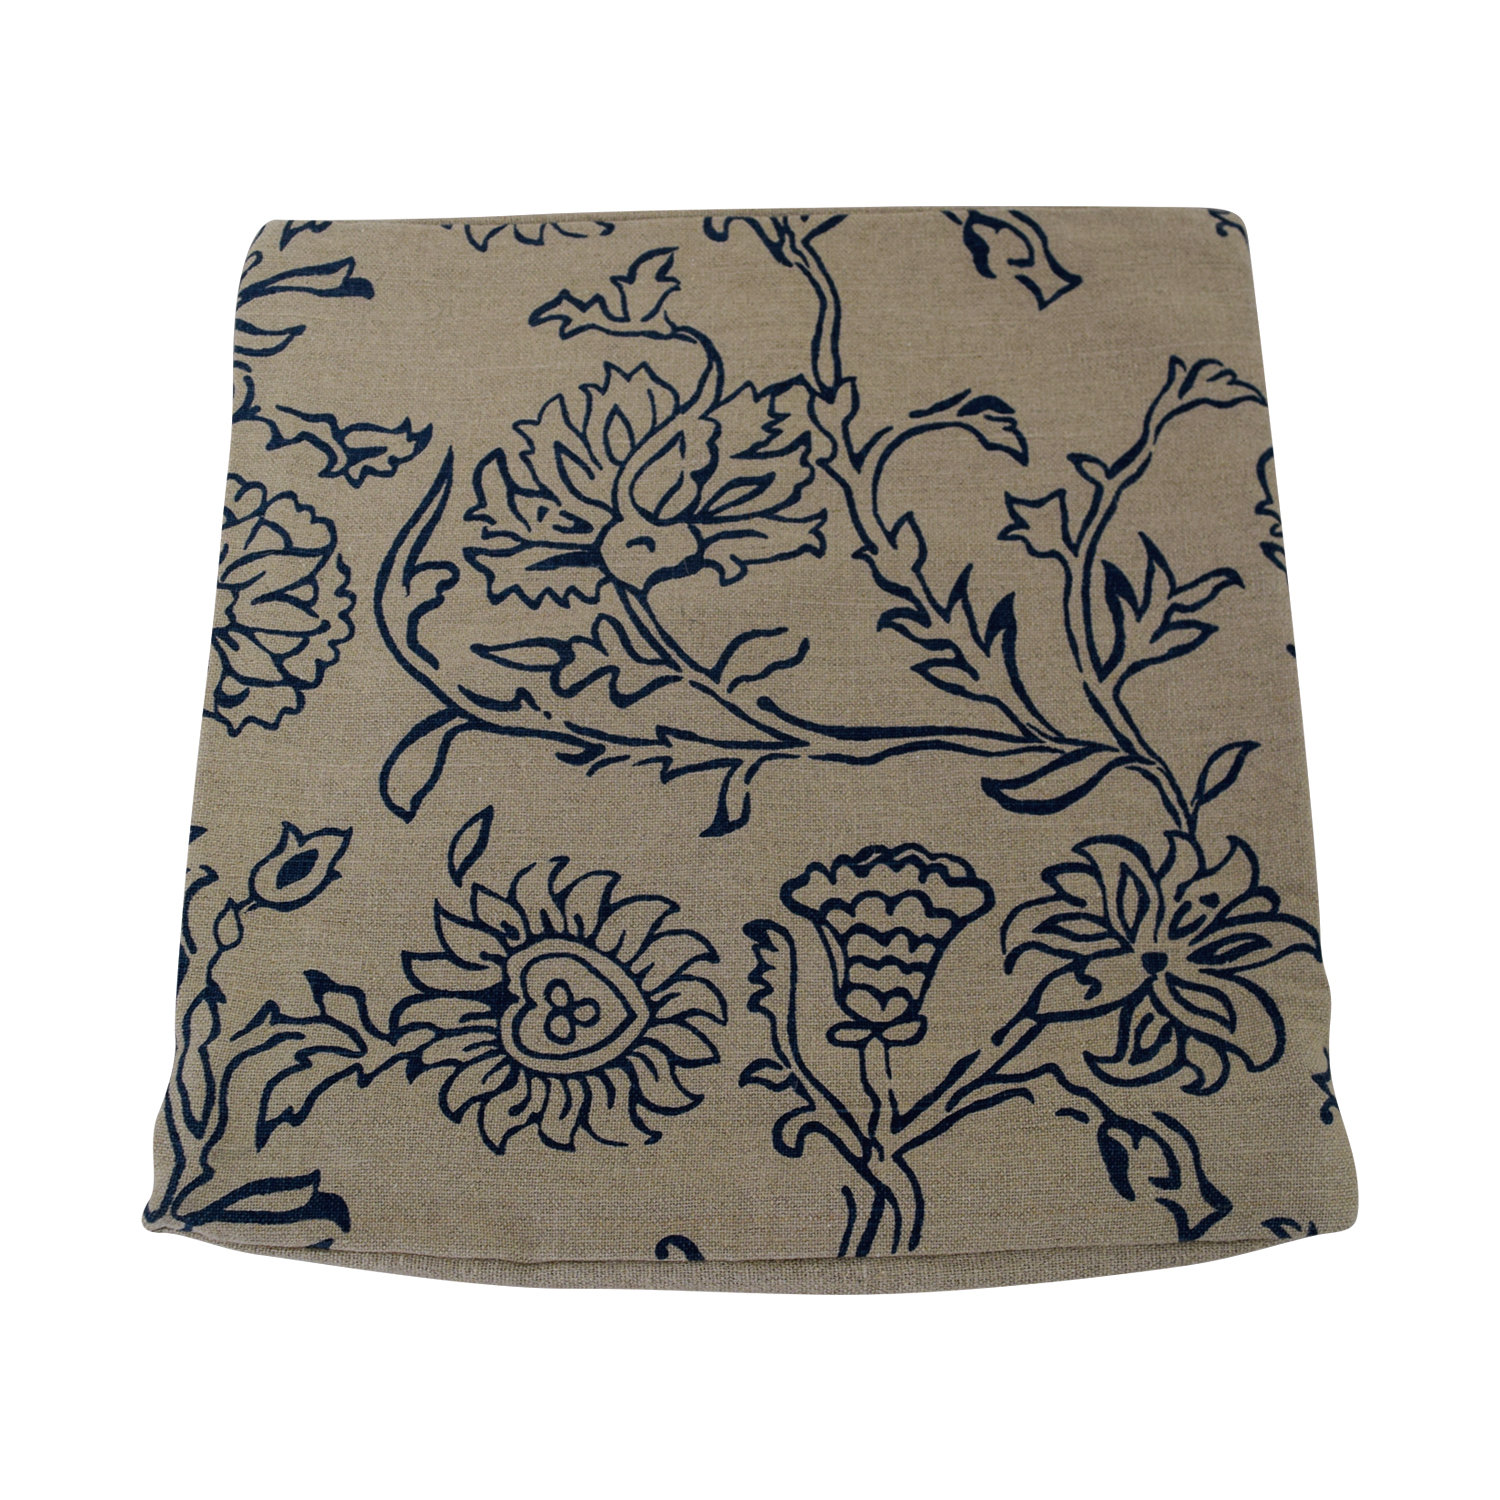 Obeetee Obeetee Floral Cushion Cover nj